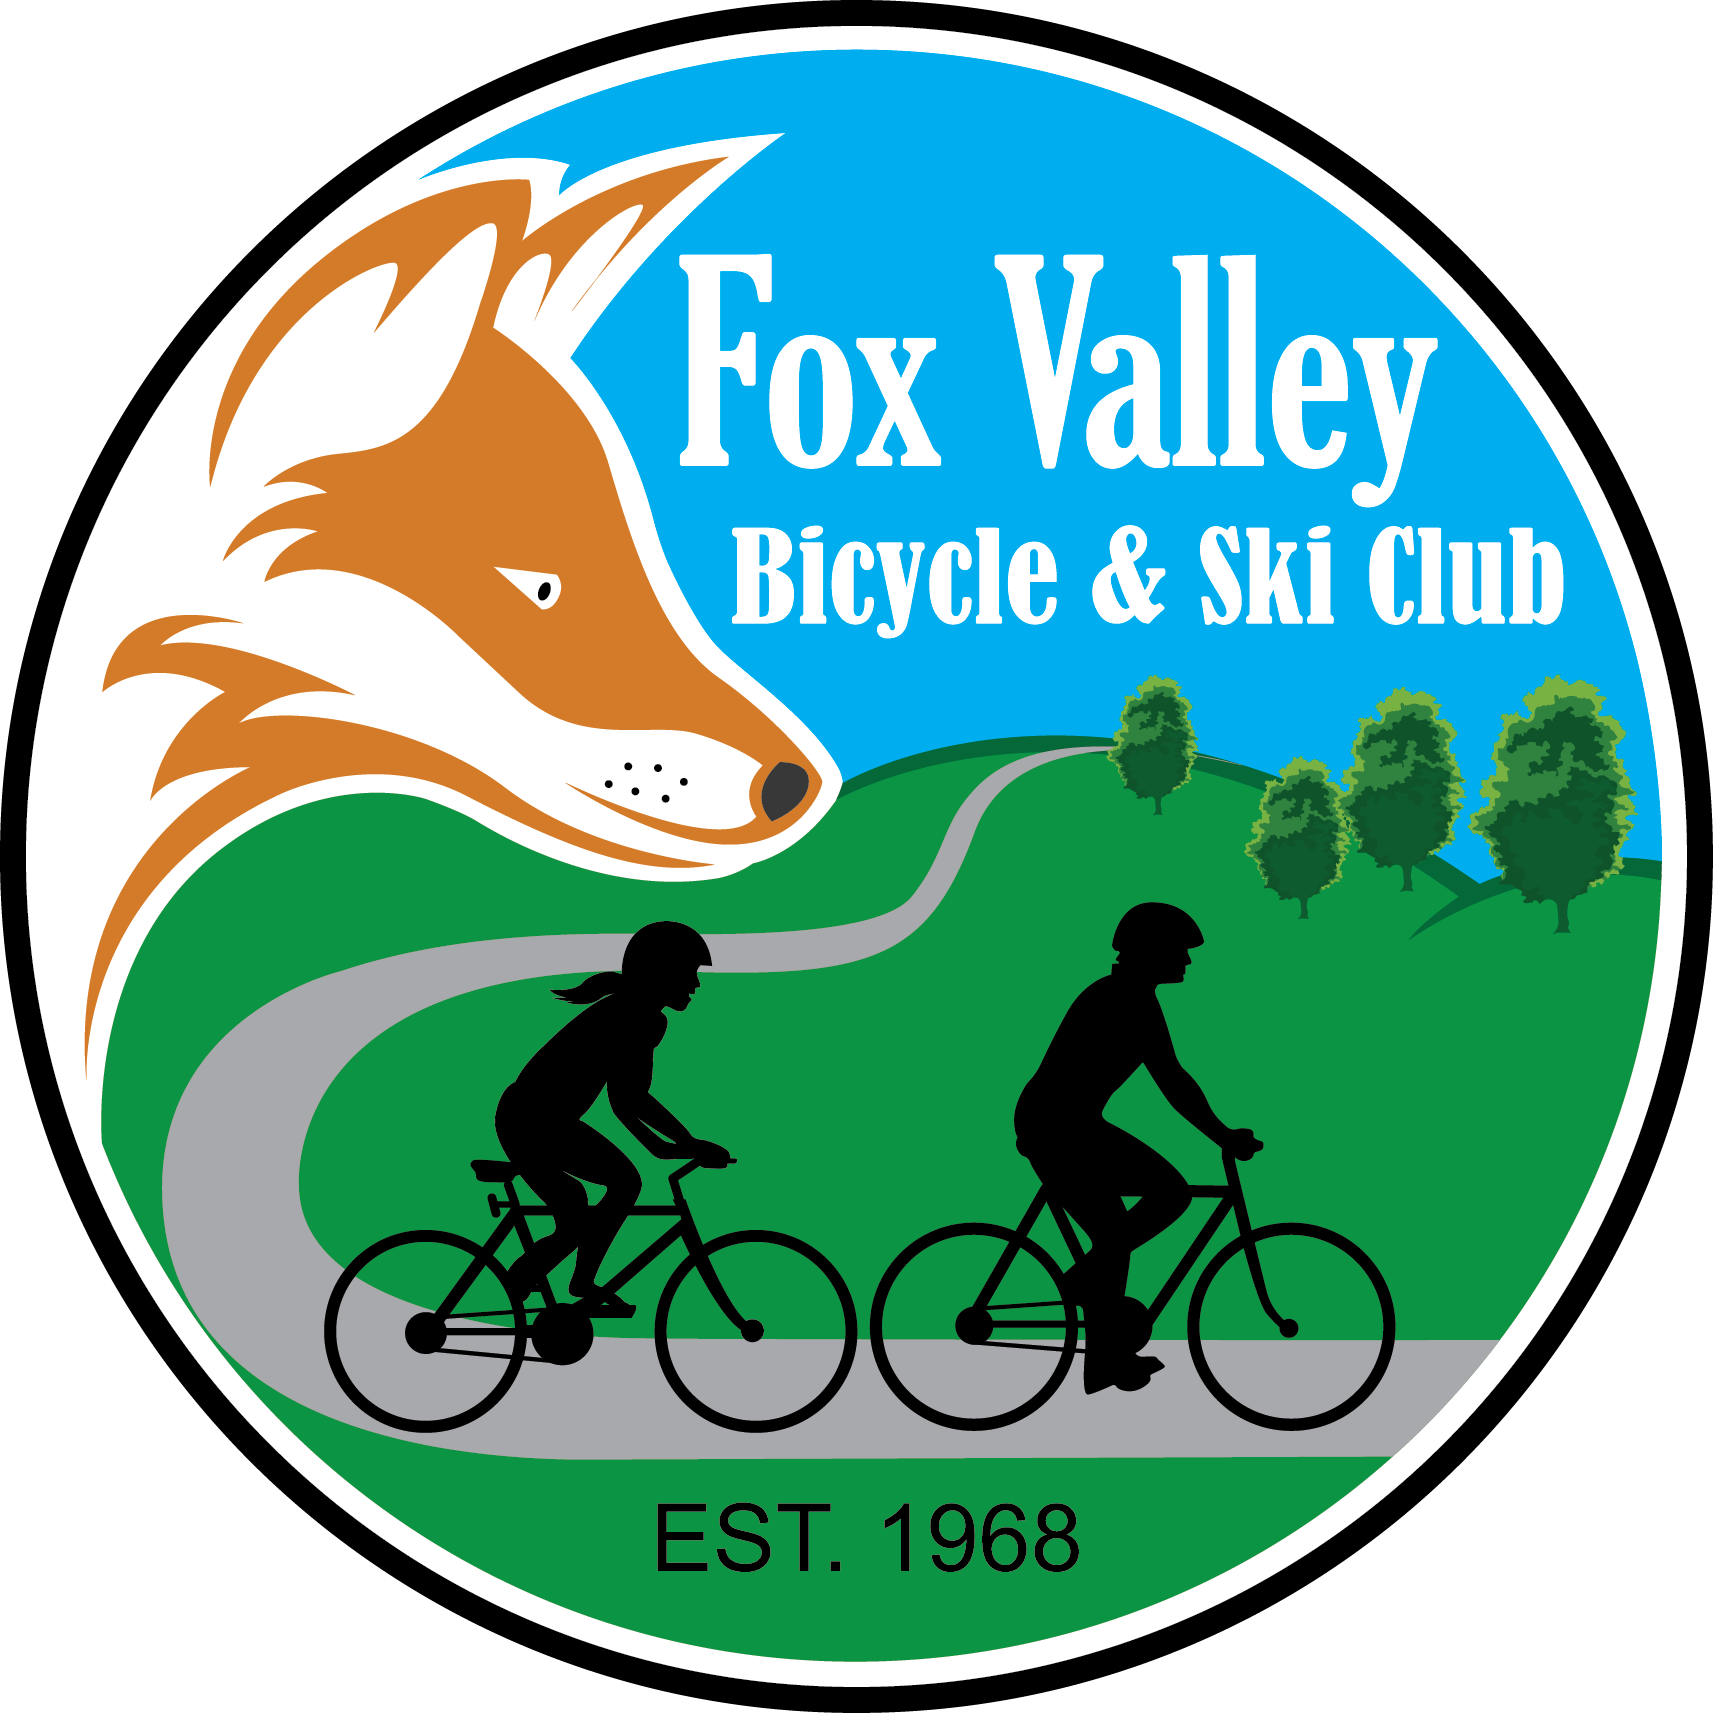 Ski clip club. History of fvbsc fox